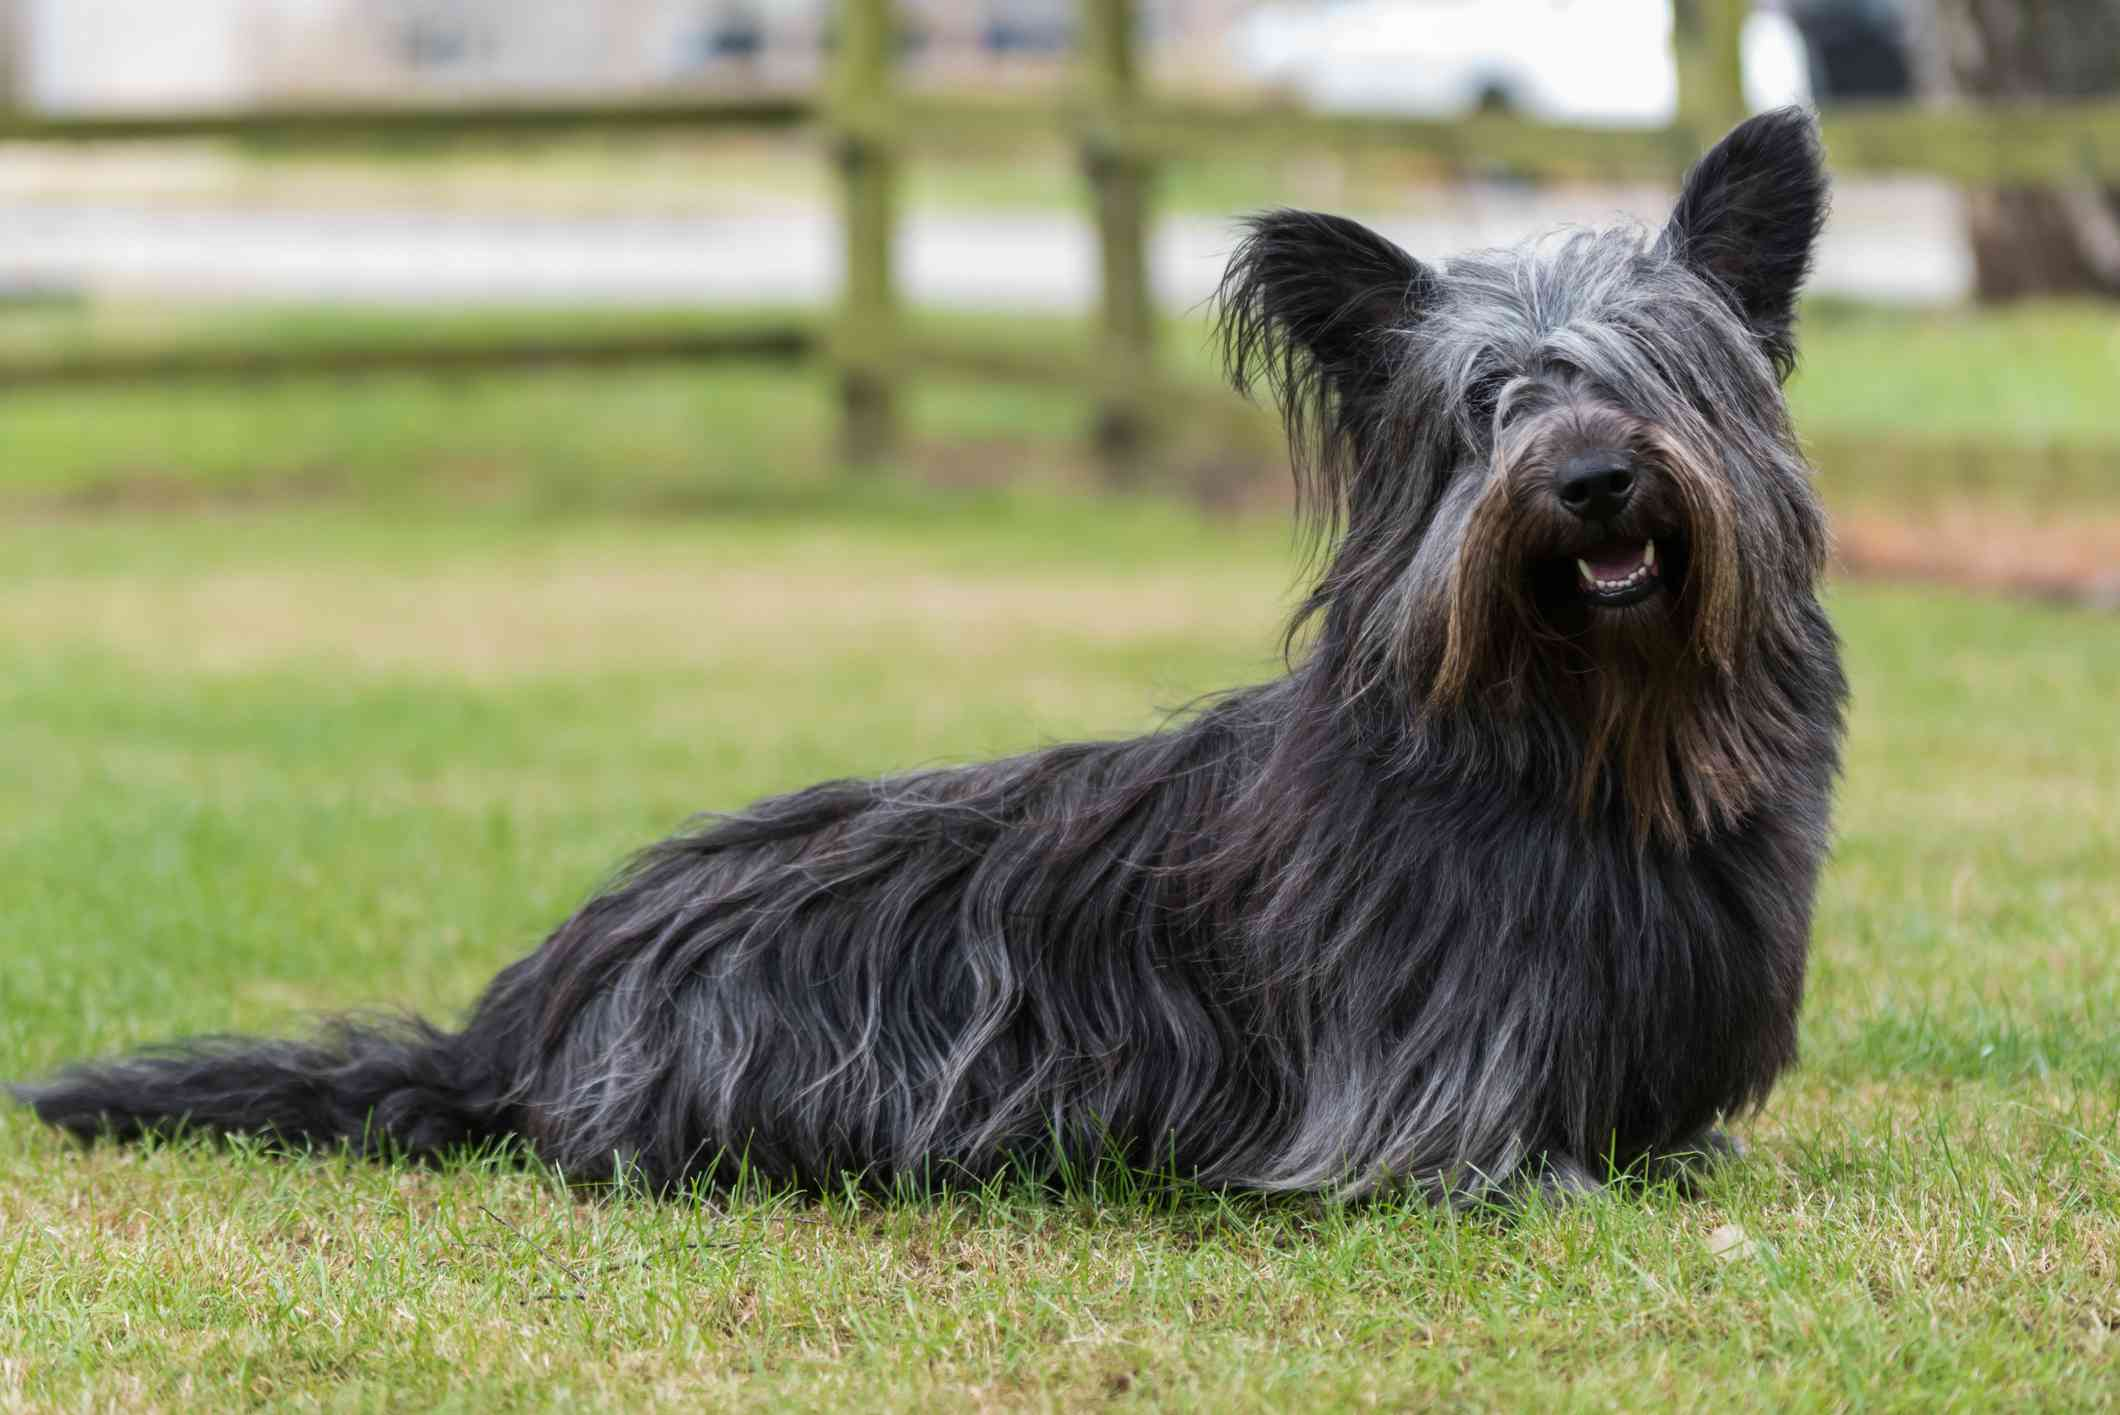 black Skye Terrier with shaggy hair and perky ears sitting in a field looking at the camera